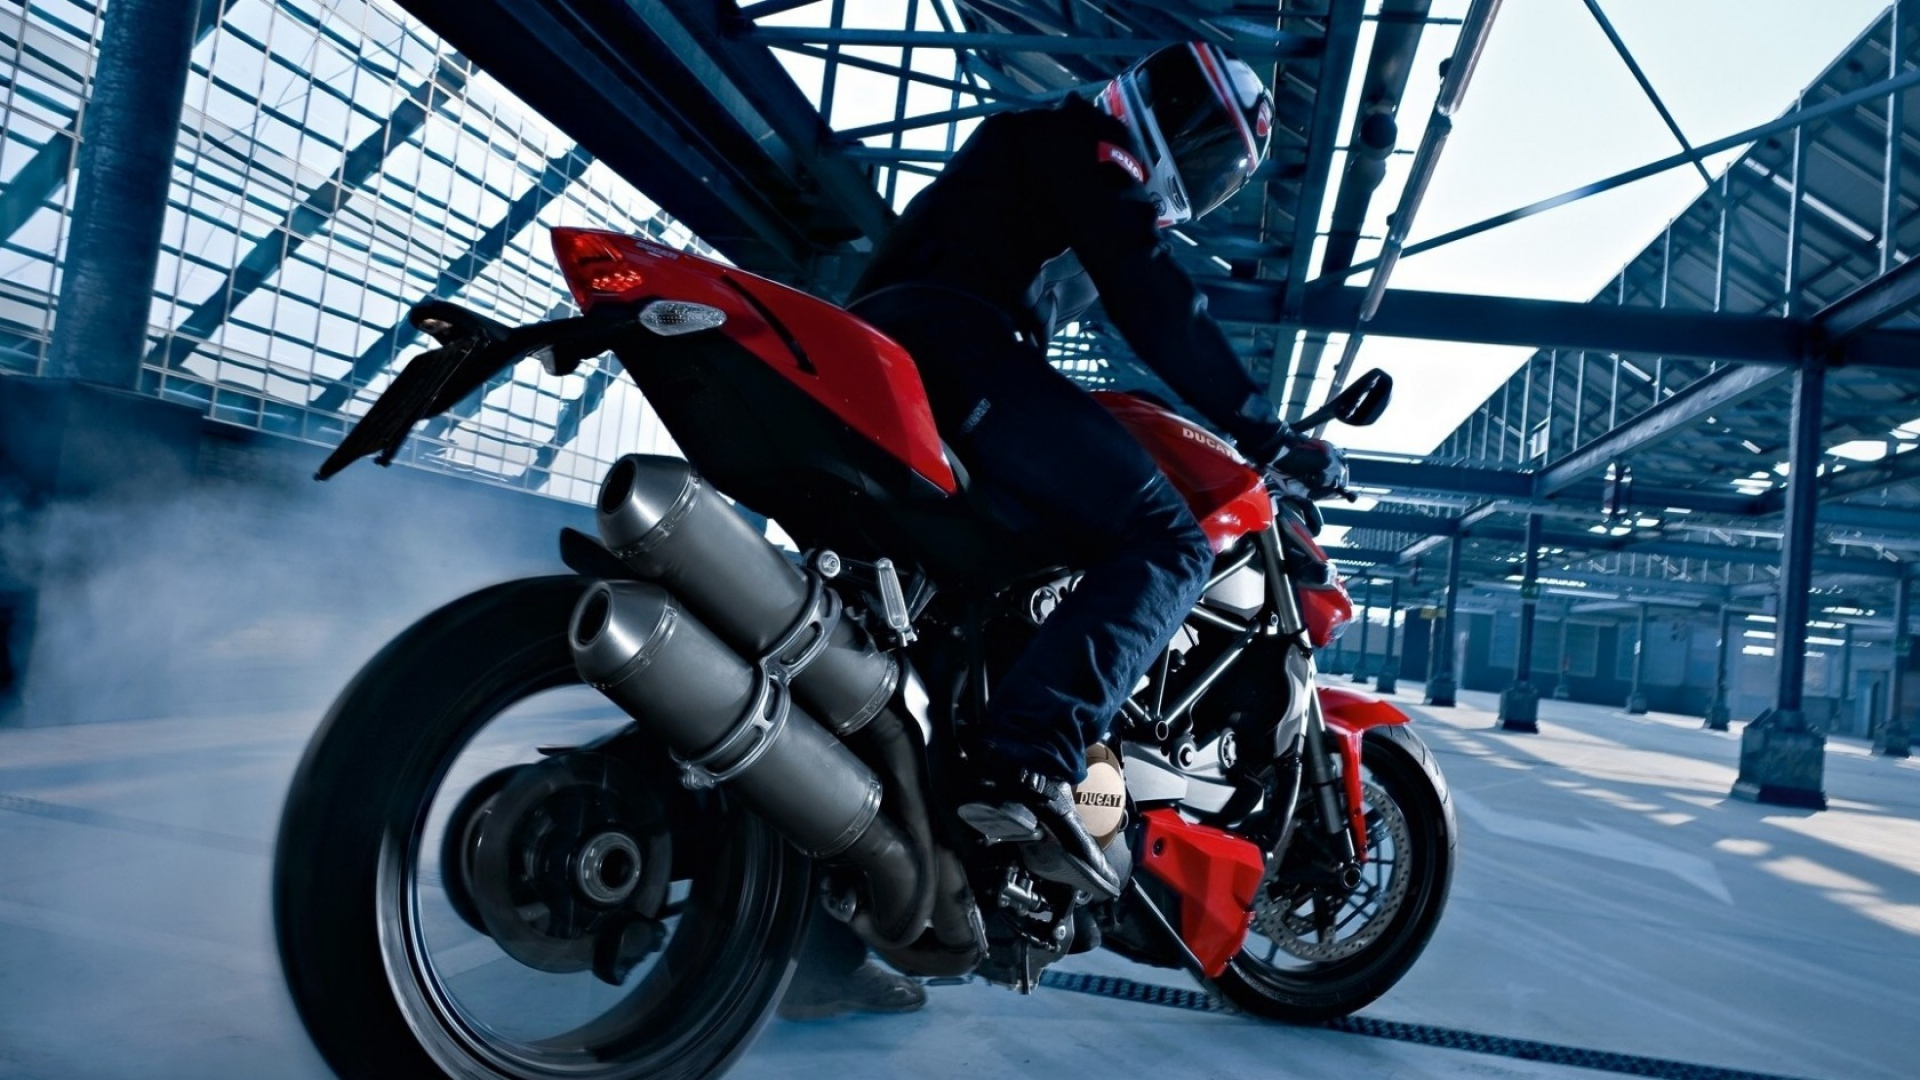 Ducati-Backgrounds-wallpaer-Full-HD-09